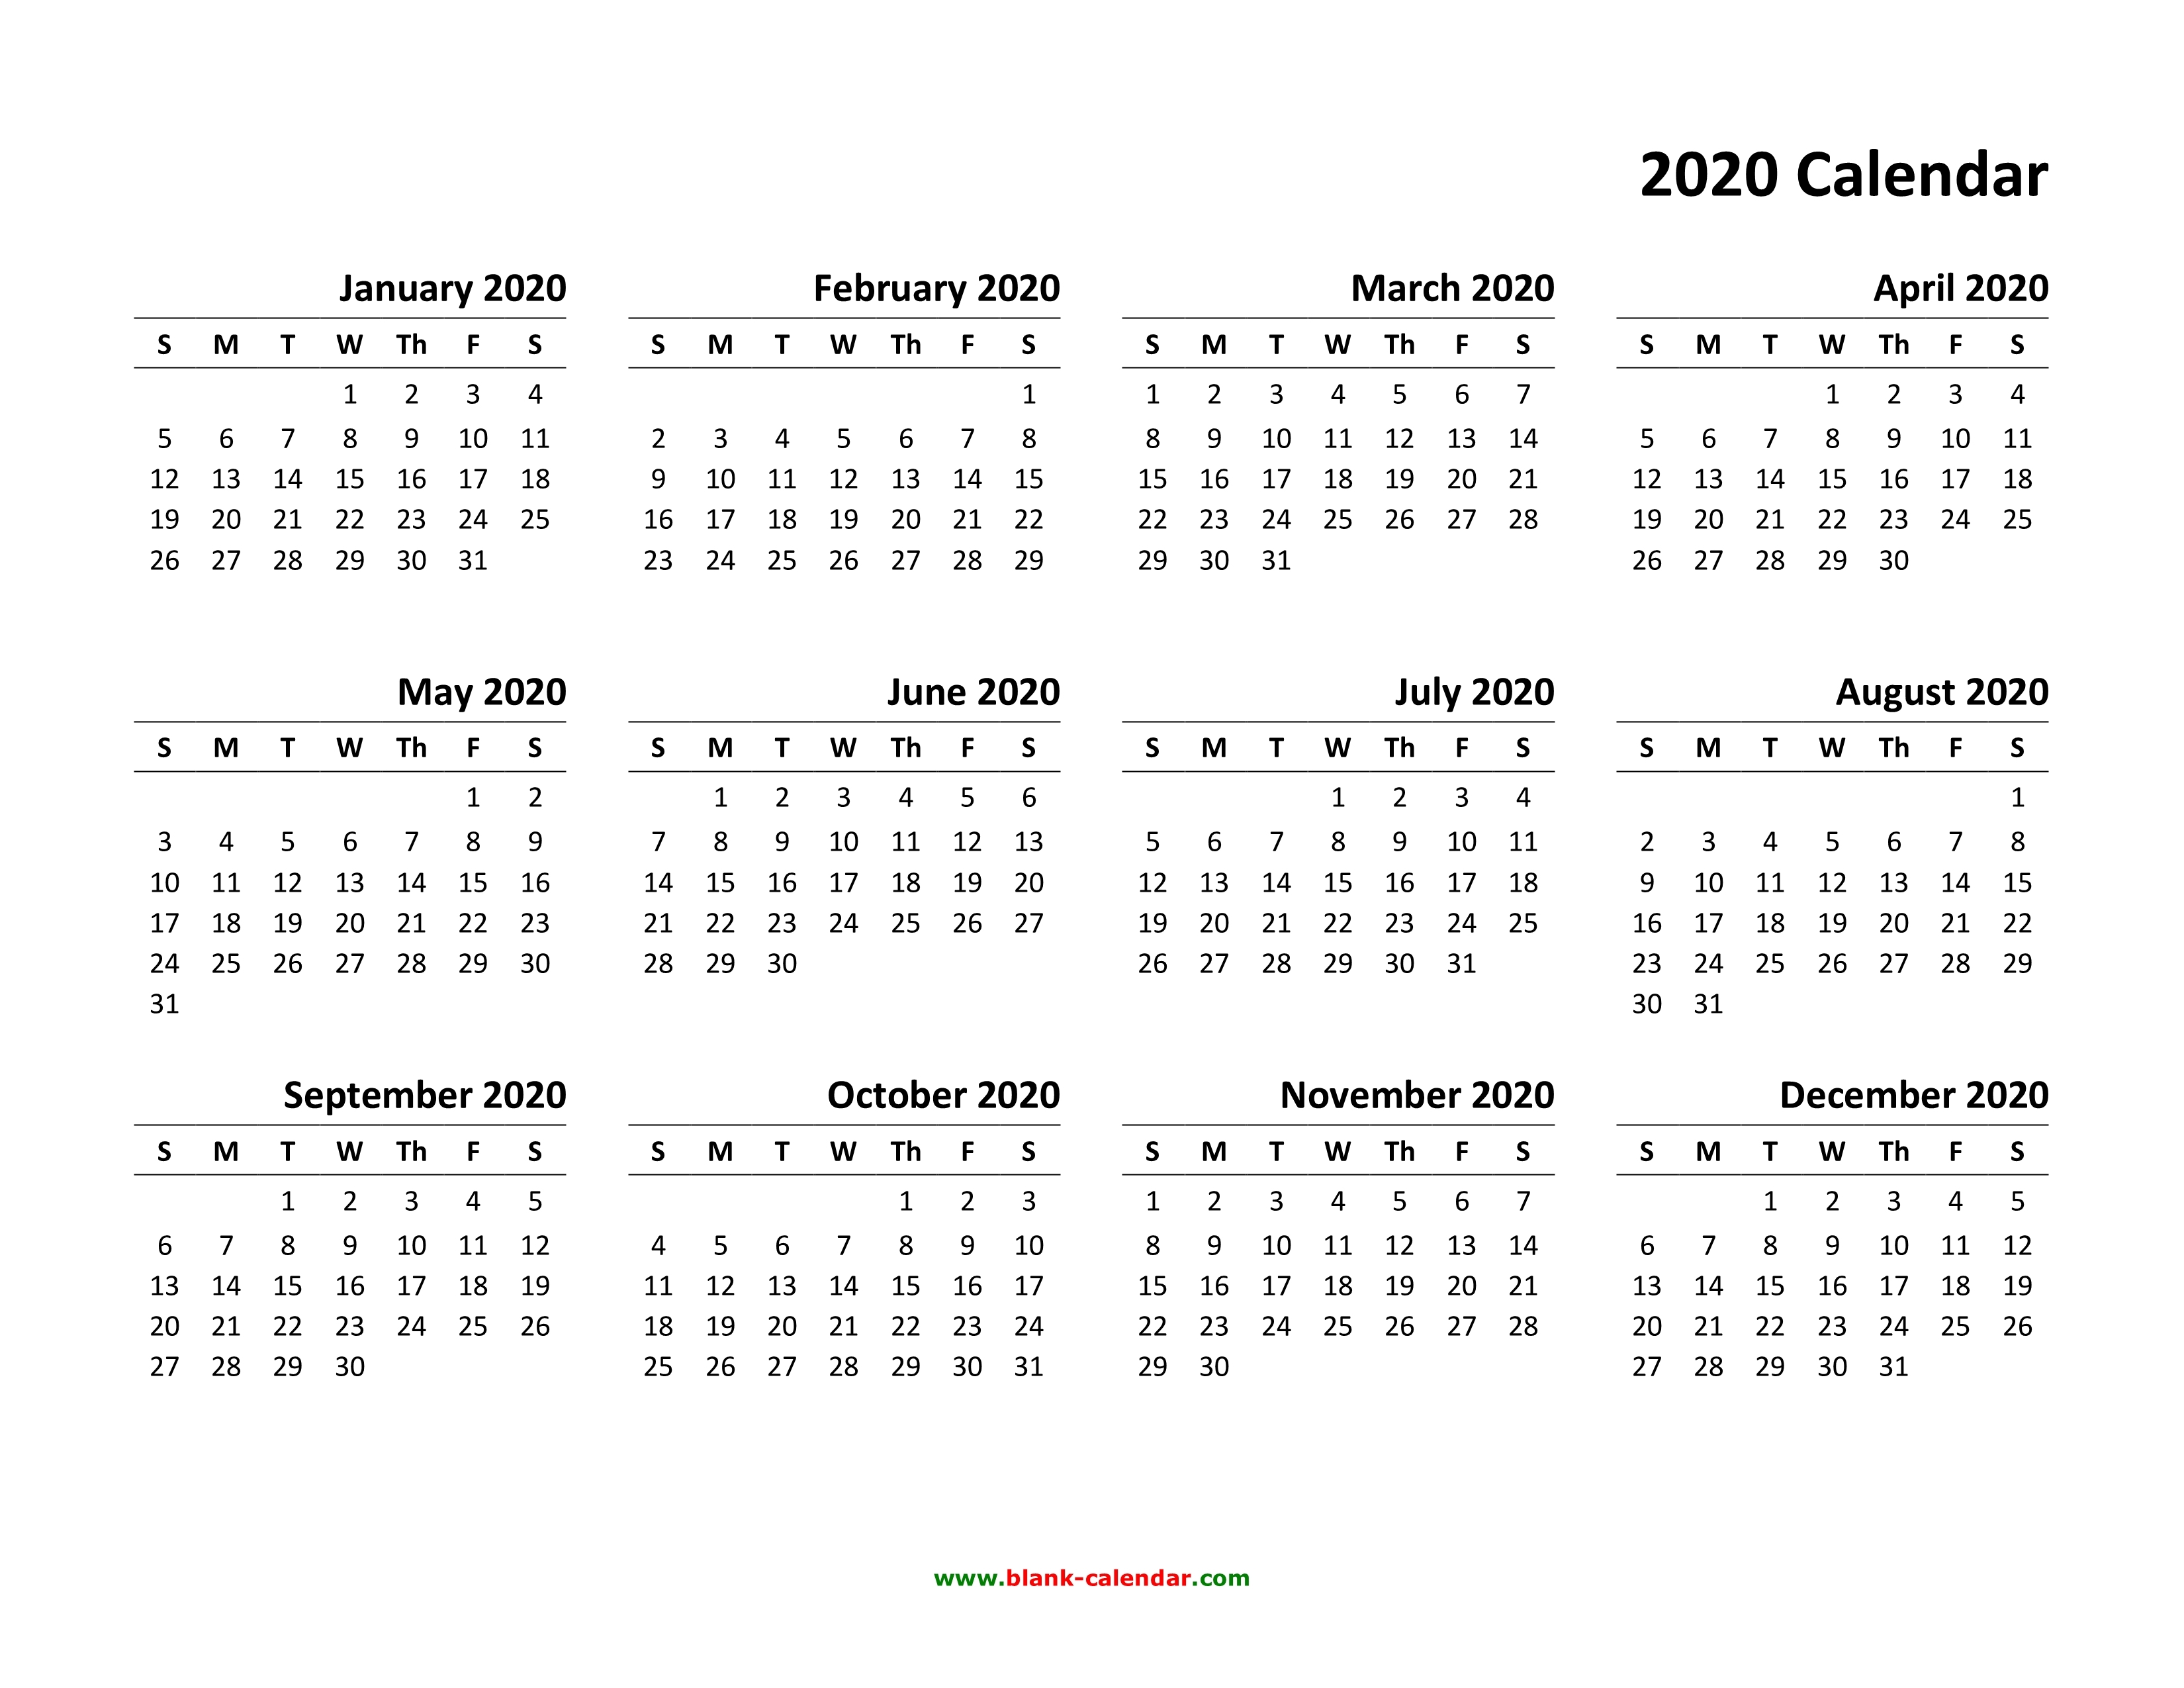 Yearly Calendar 2020 | Free Download And Print within Free 2020Printable Calendars Without Downloading